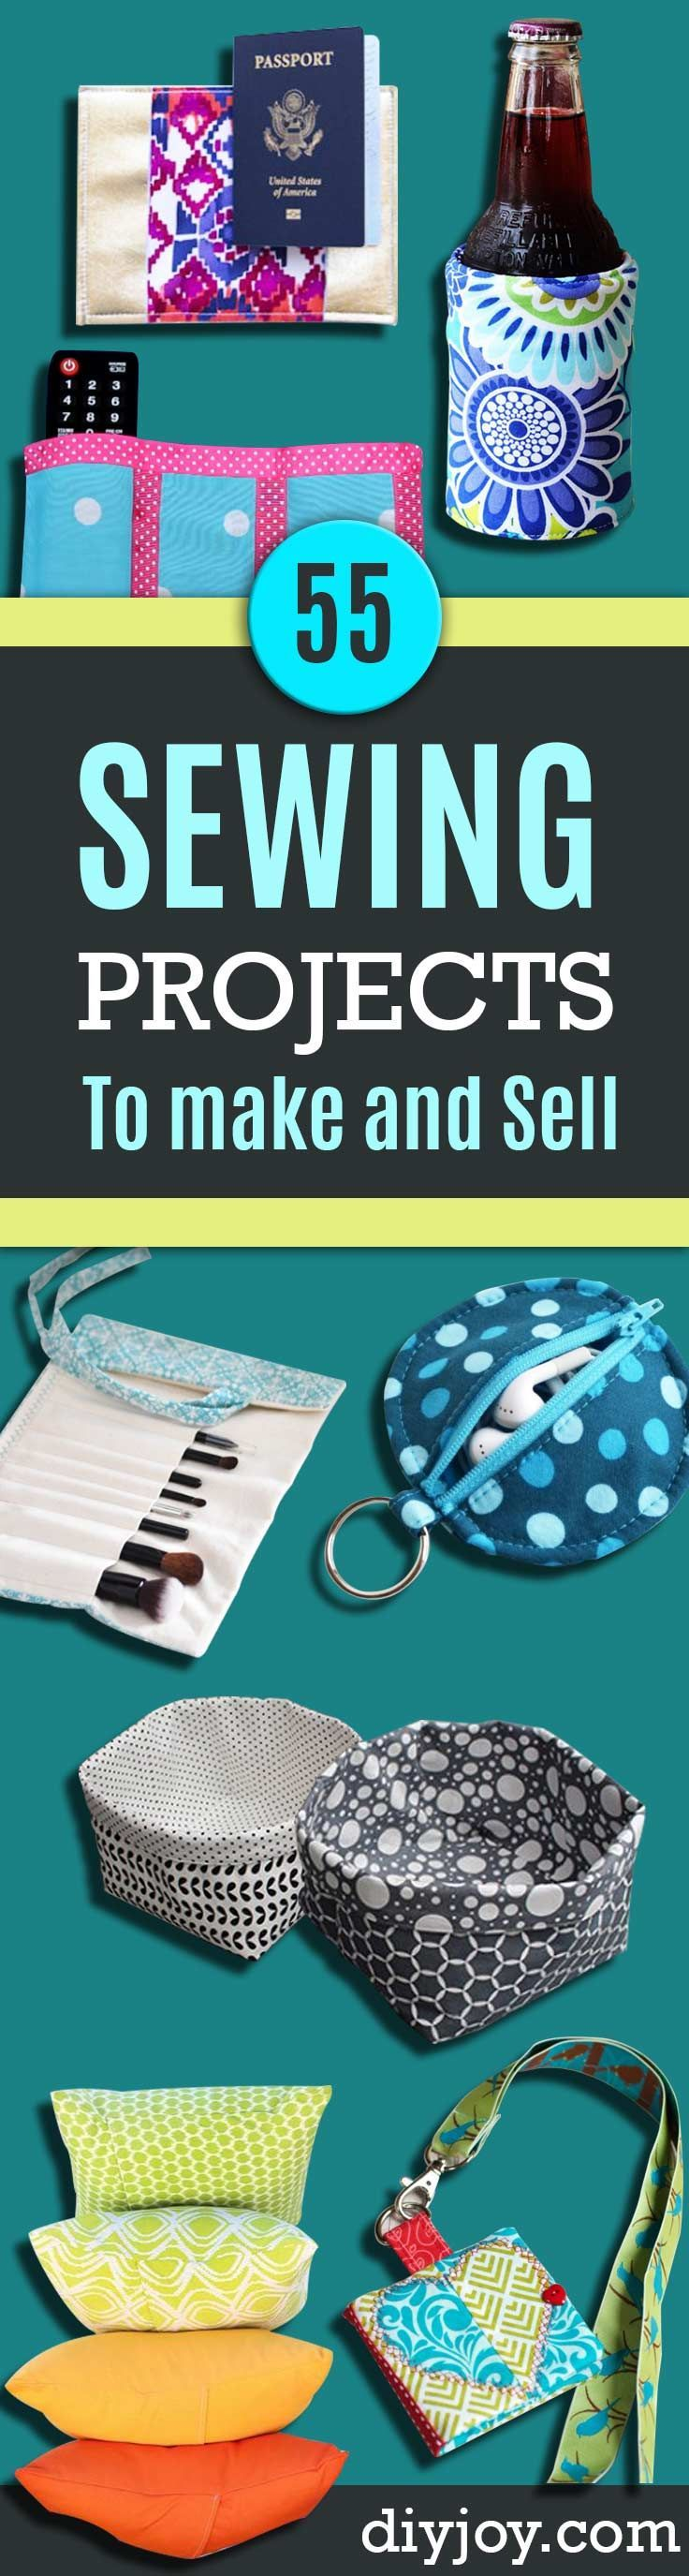 best ideas about sew gifts sewing diy gifts to 55 sewing projects to make and sell